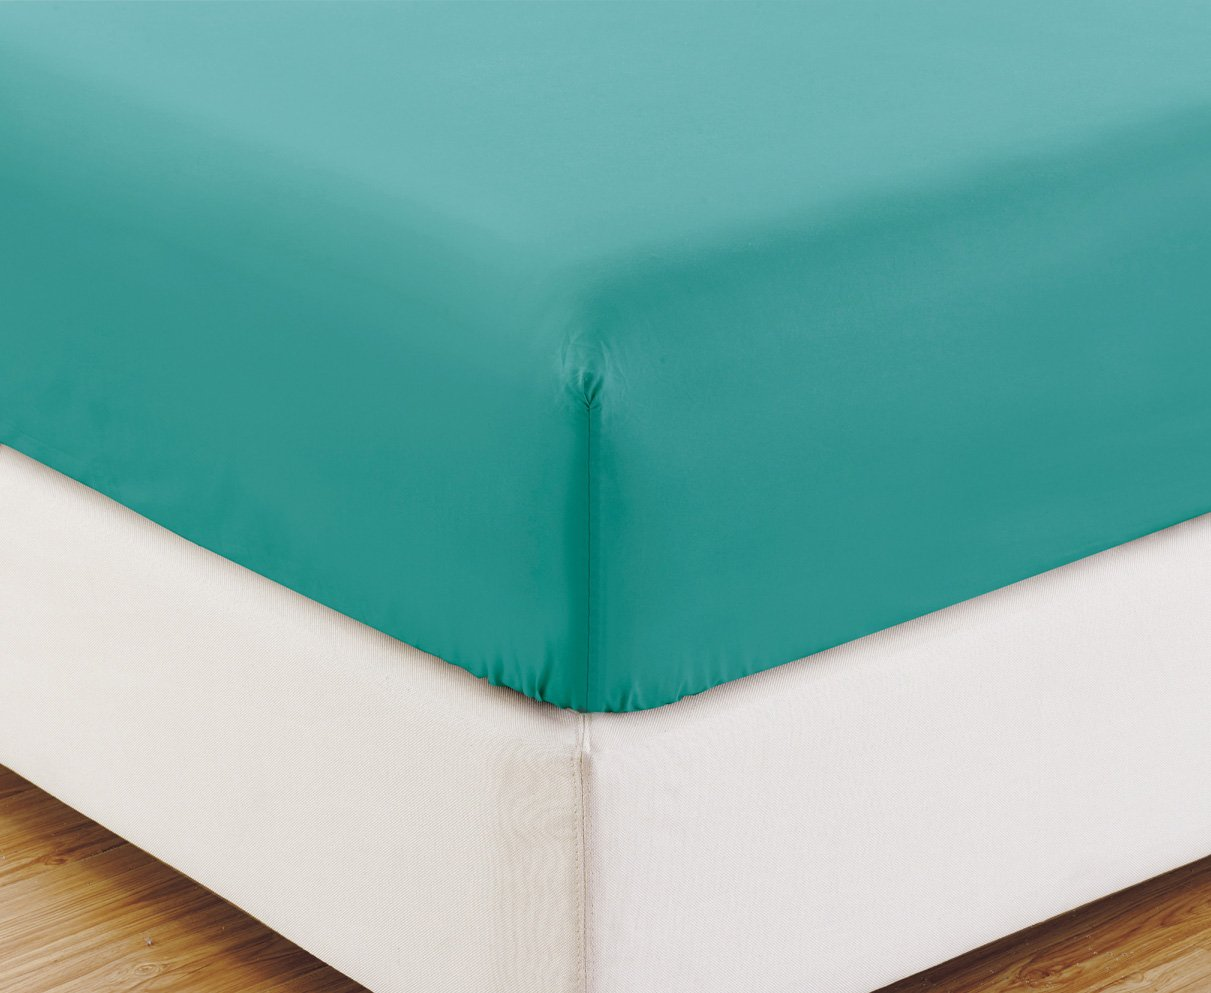 FULL size, TURQUOISE BLUE Solid Fitted Bed Sheet - Super Silky Soft - SALE - High Thread Count Brushed Microfiber - 1500 Series-Wrinkle, Fade, Stain Resistant, Deep Pockets, 100%